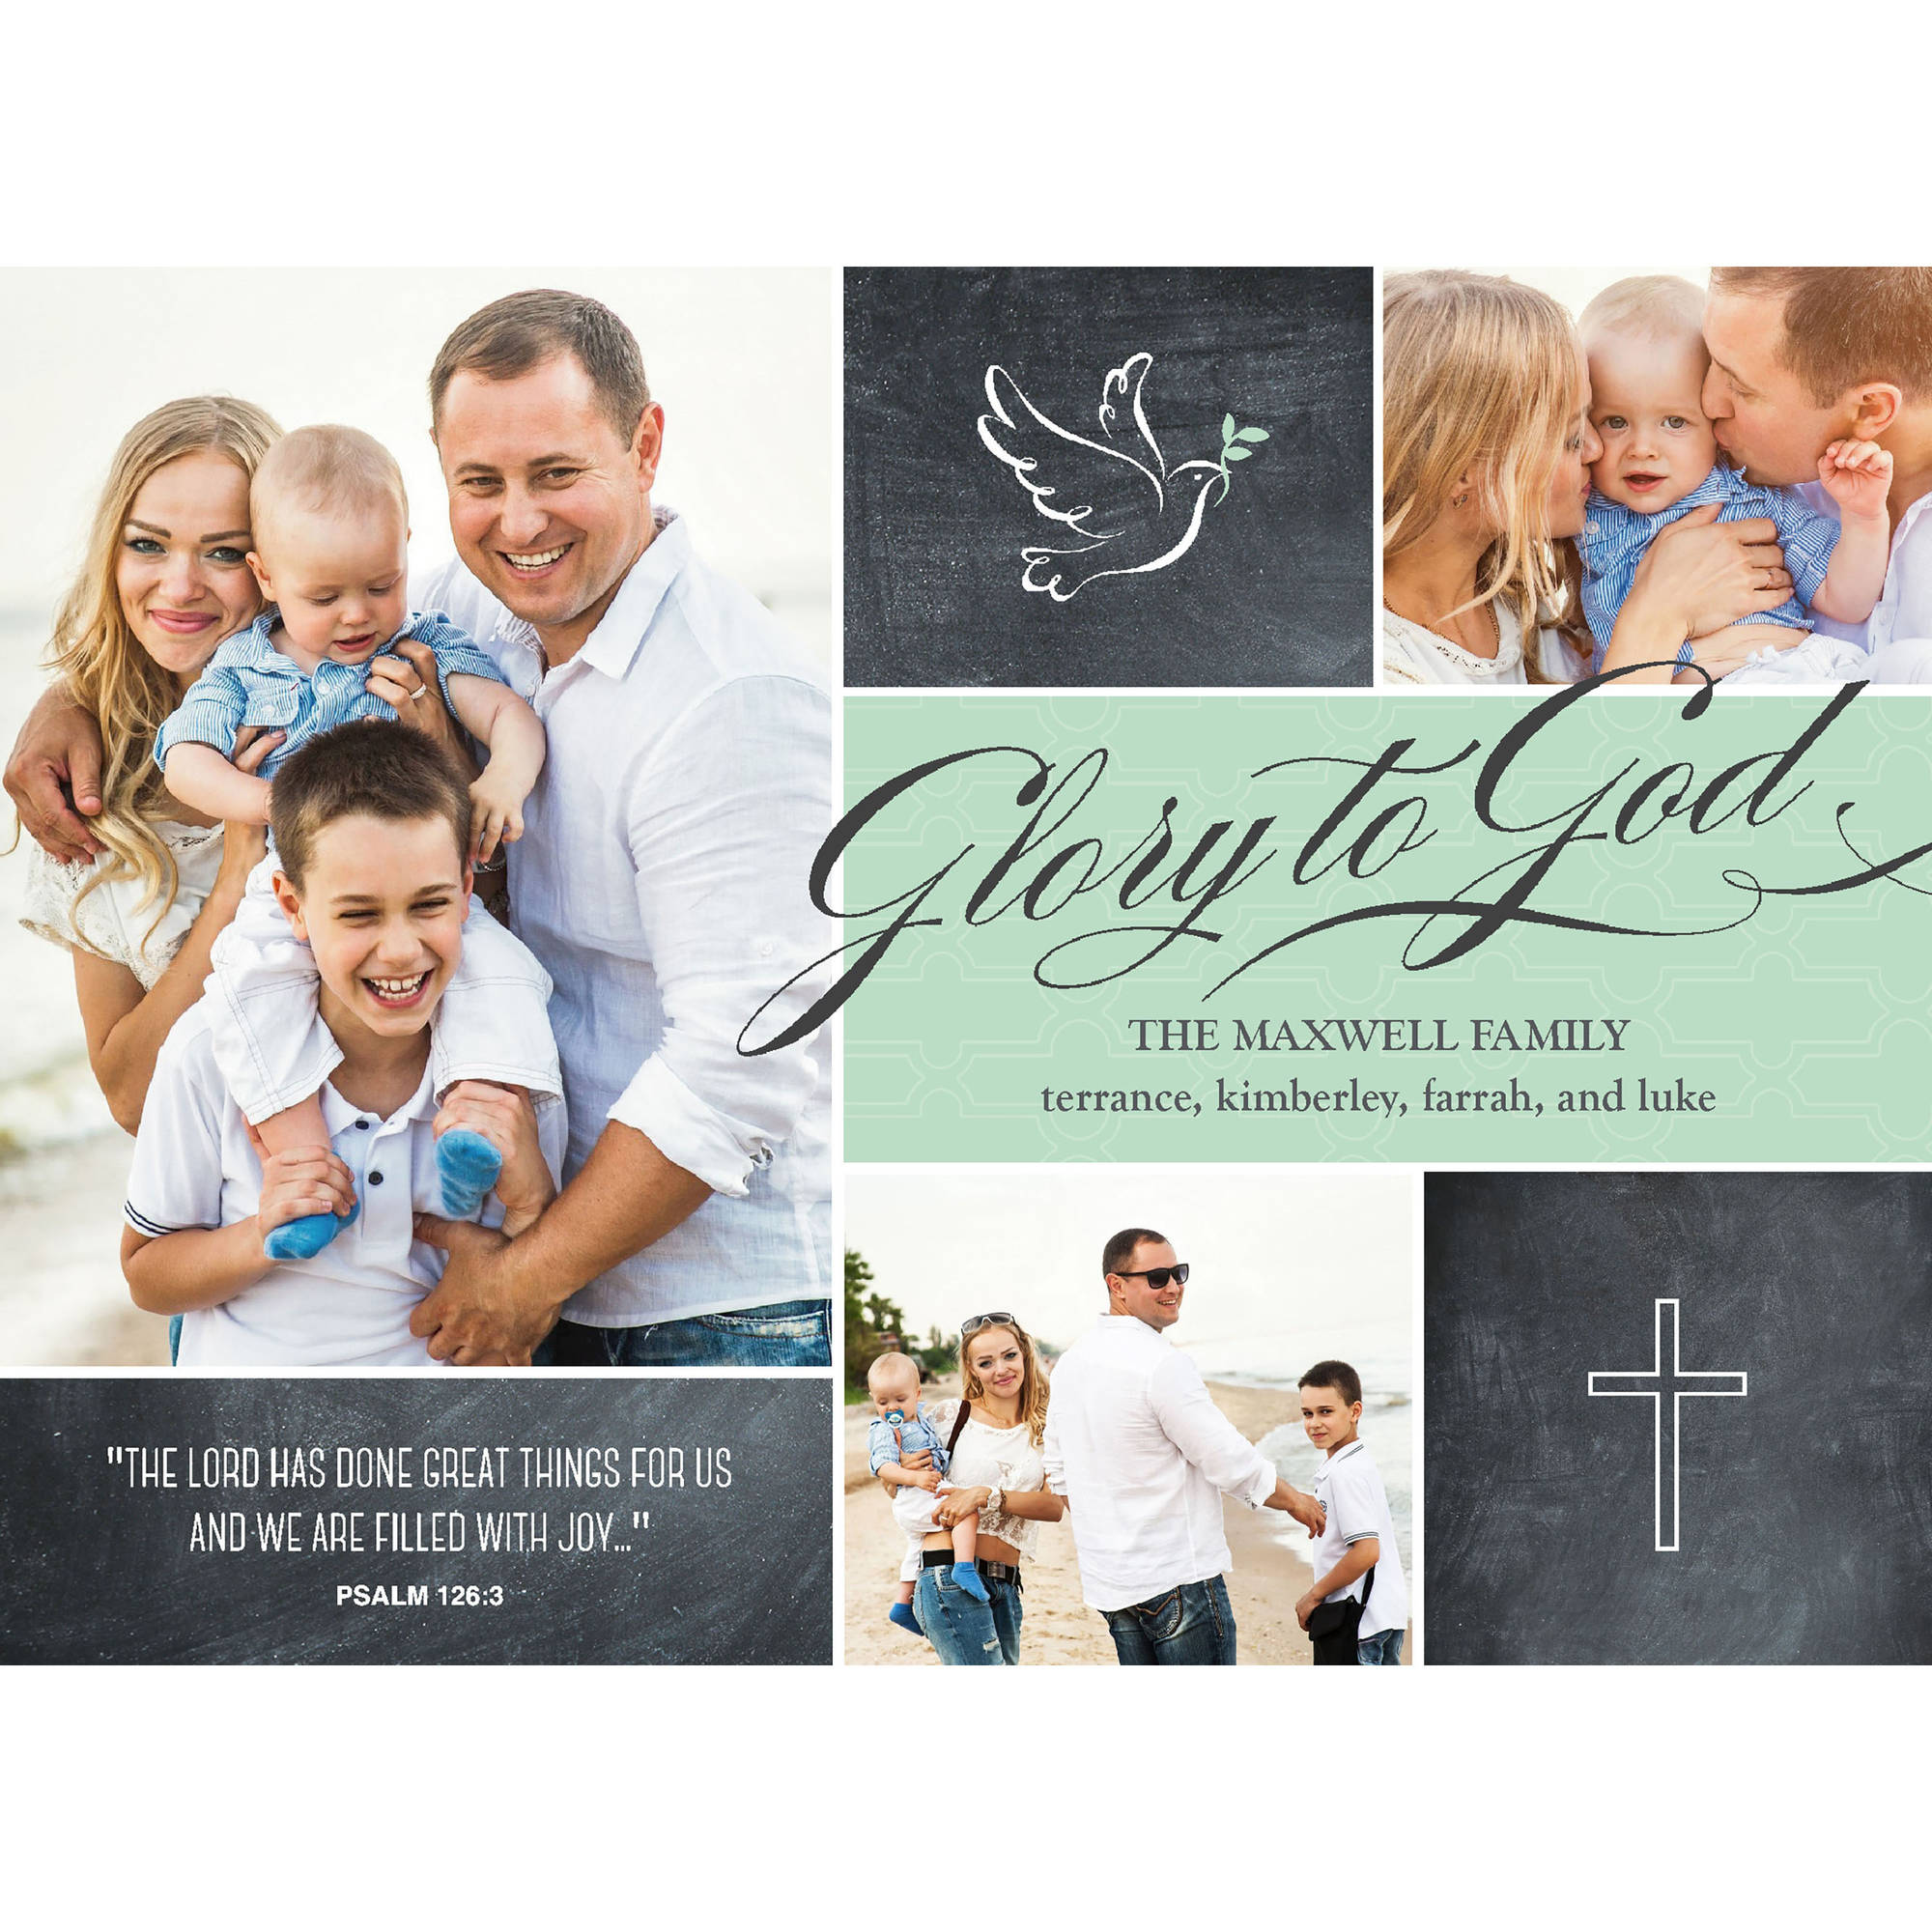 Glory to God - 5x7 Personalized Religious Holiday Card